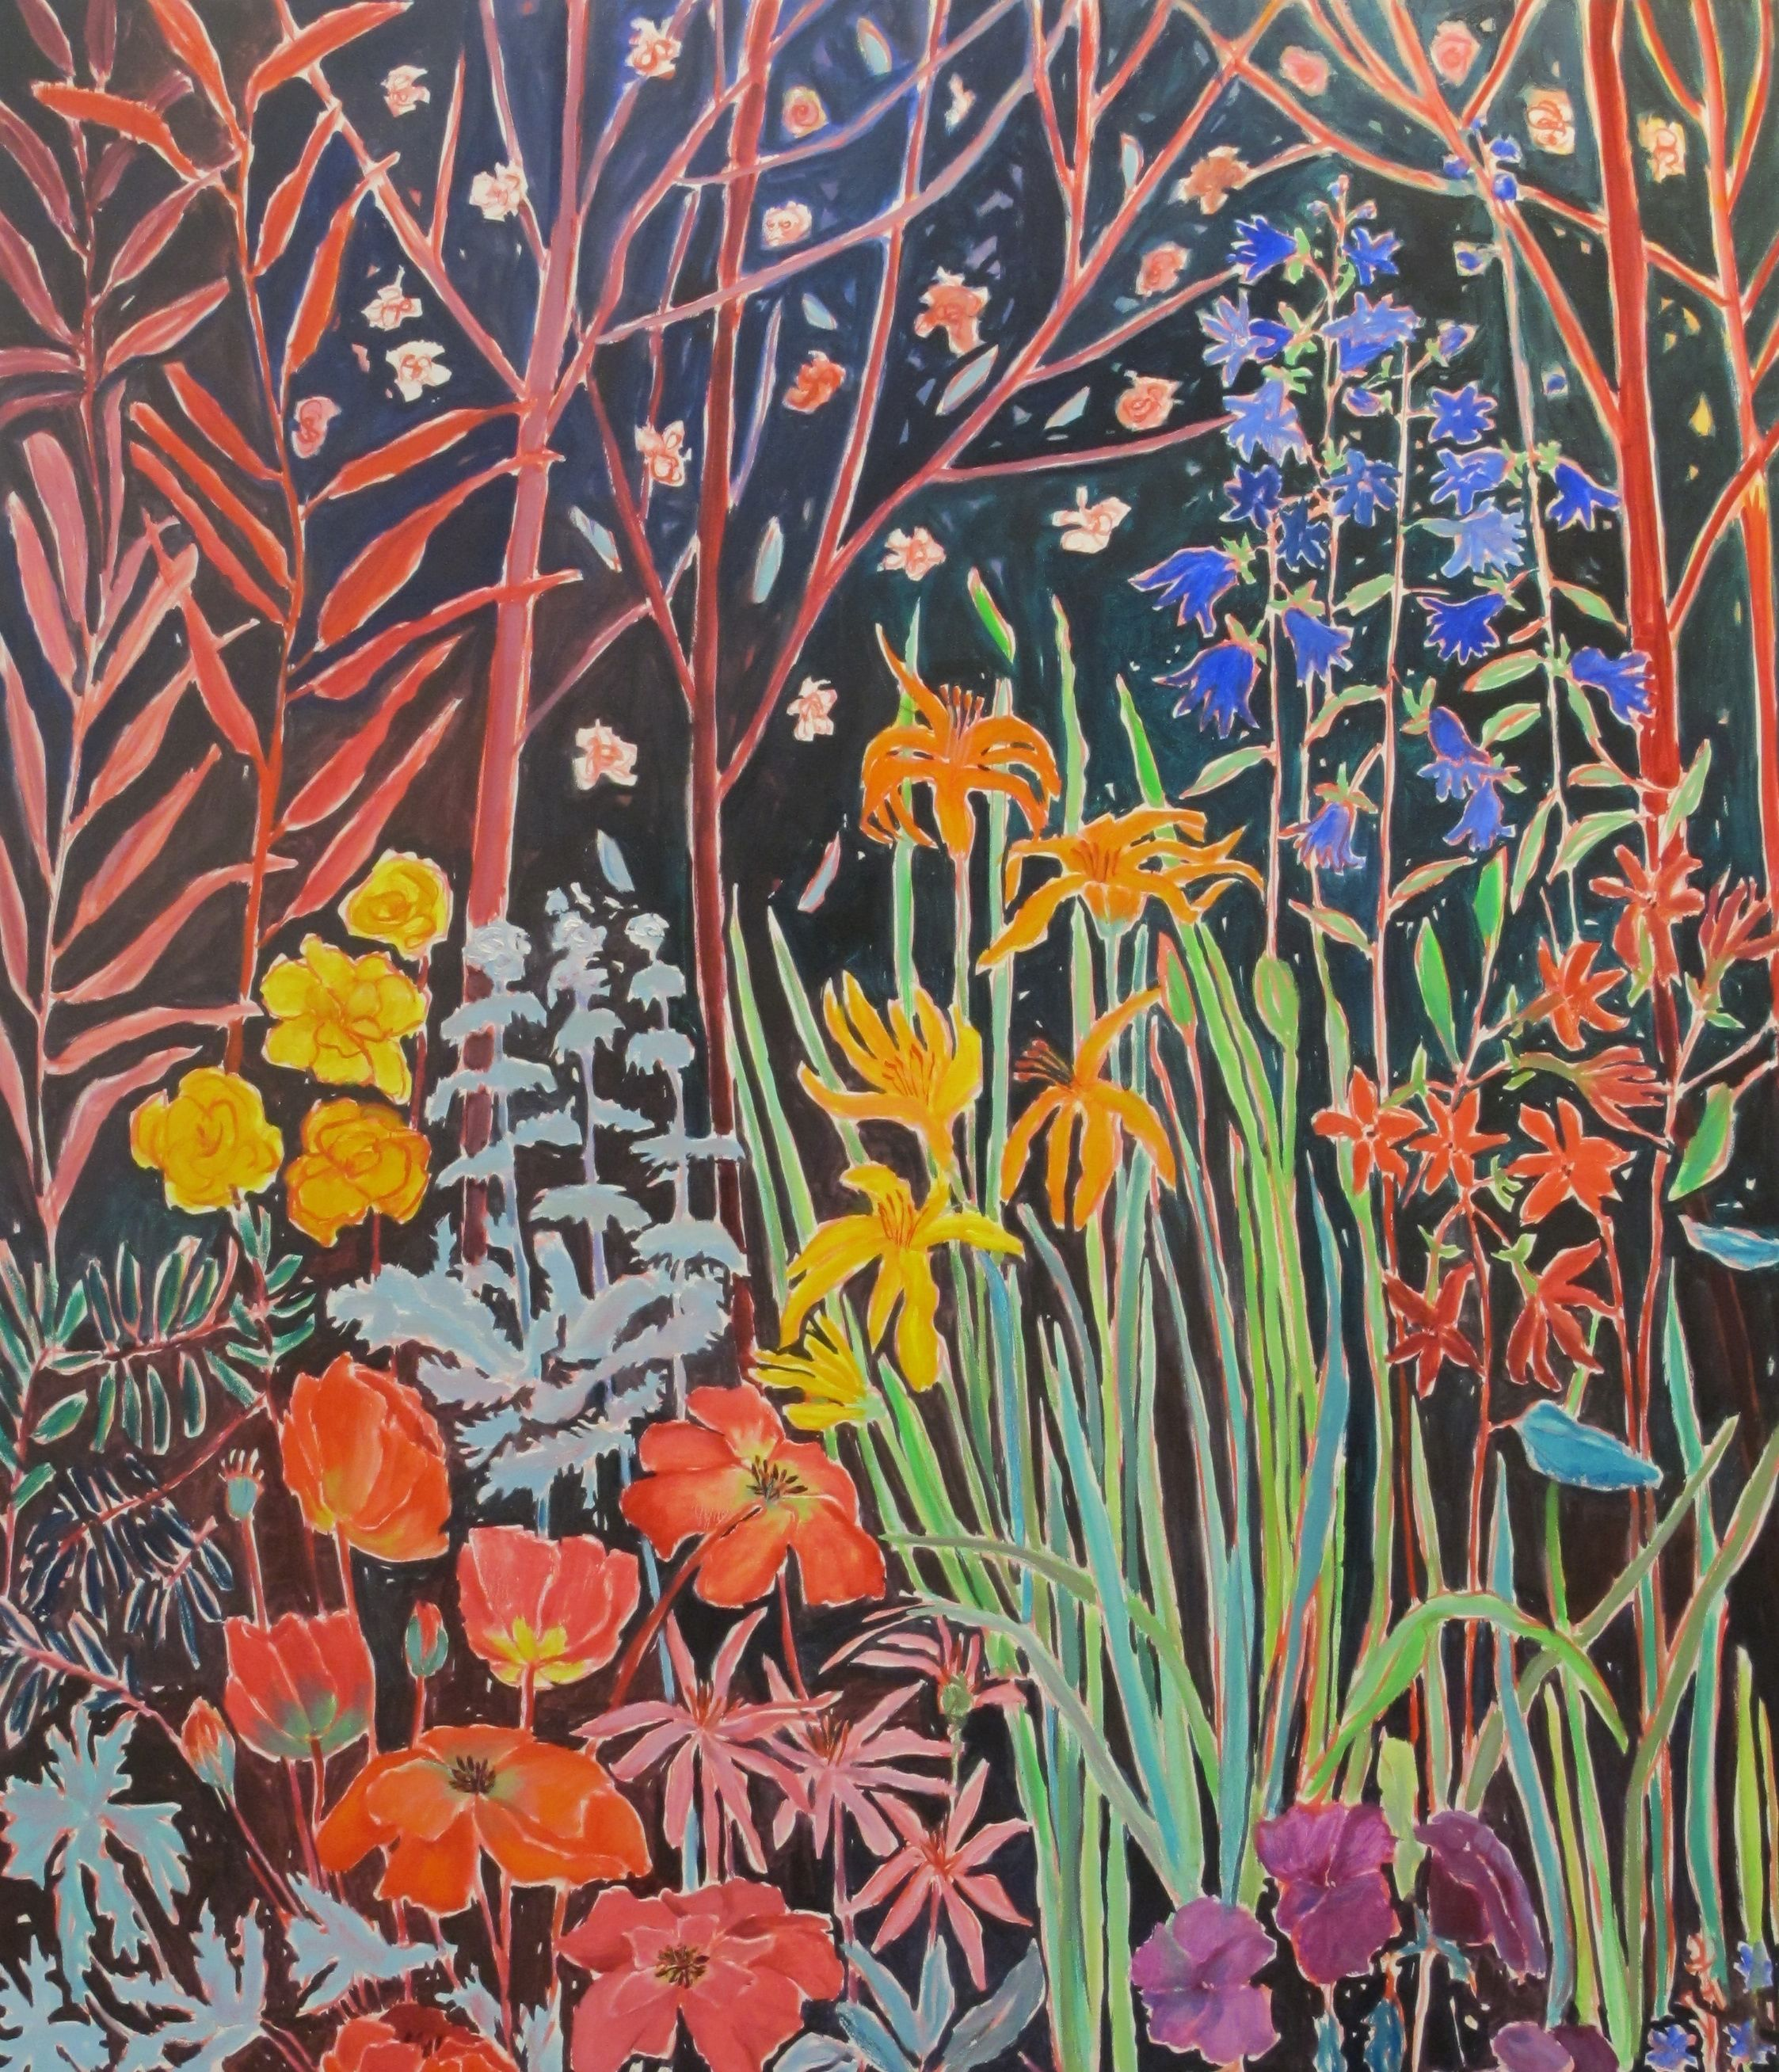 S Renting the Garden oil on canvas 72 x 48 inches.jpg